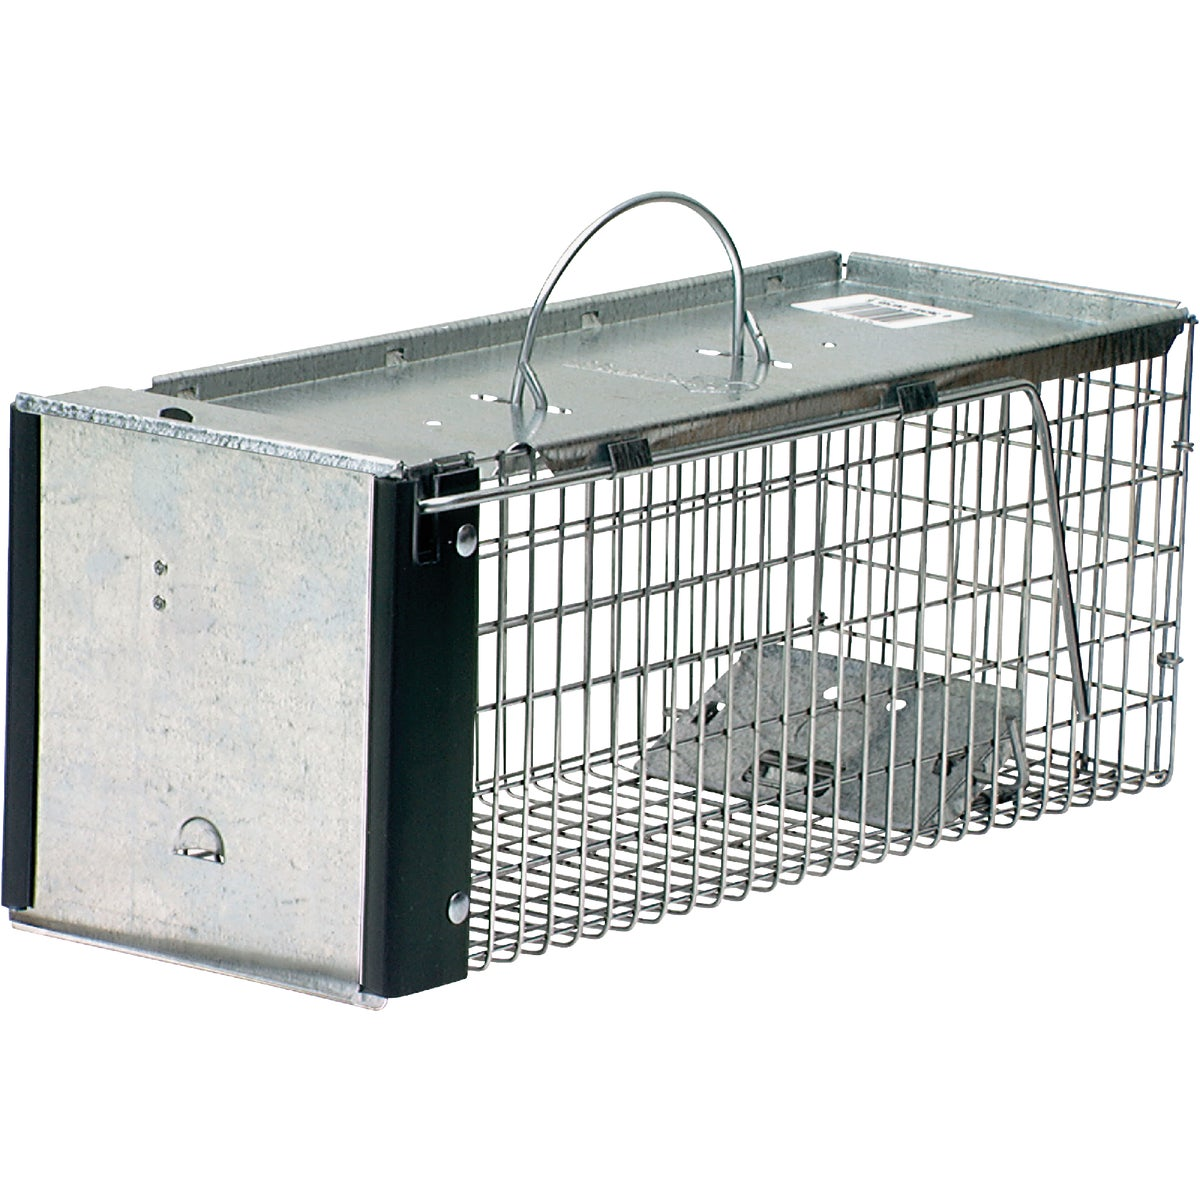 17X7X7 PRO SQUIRREL TRAP - 1077 by Woodstream Corp